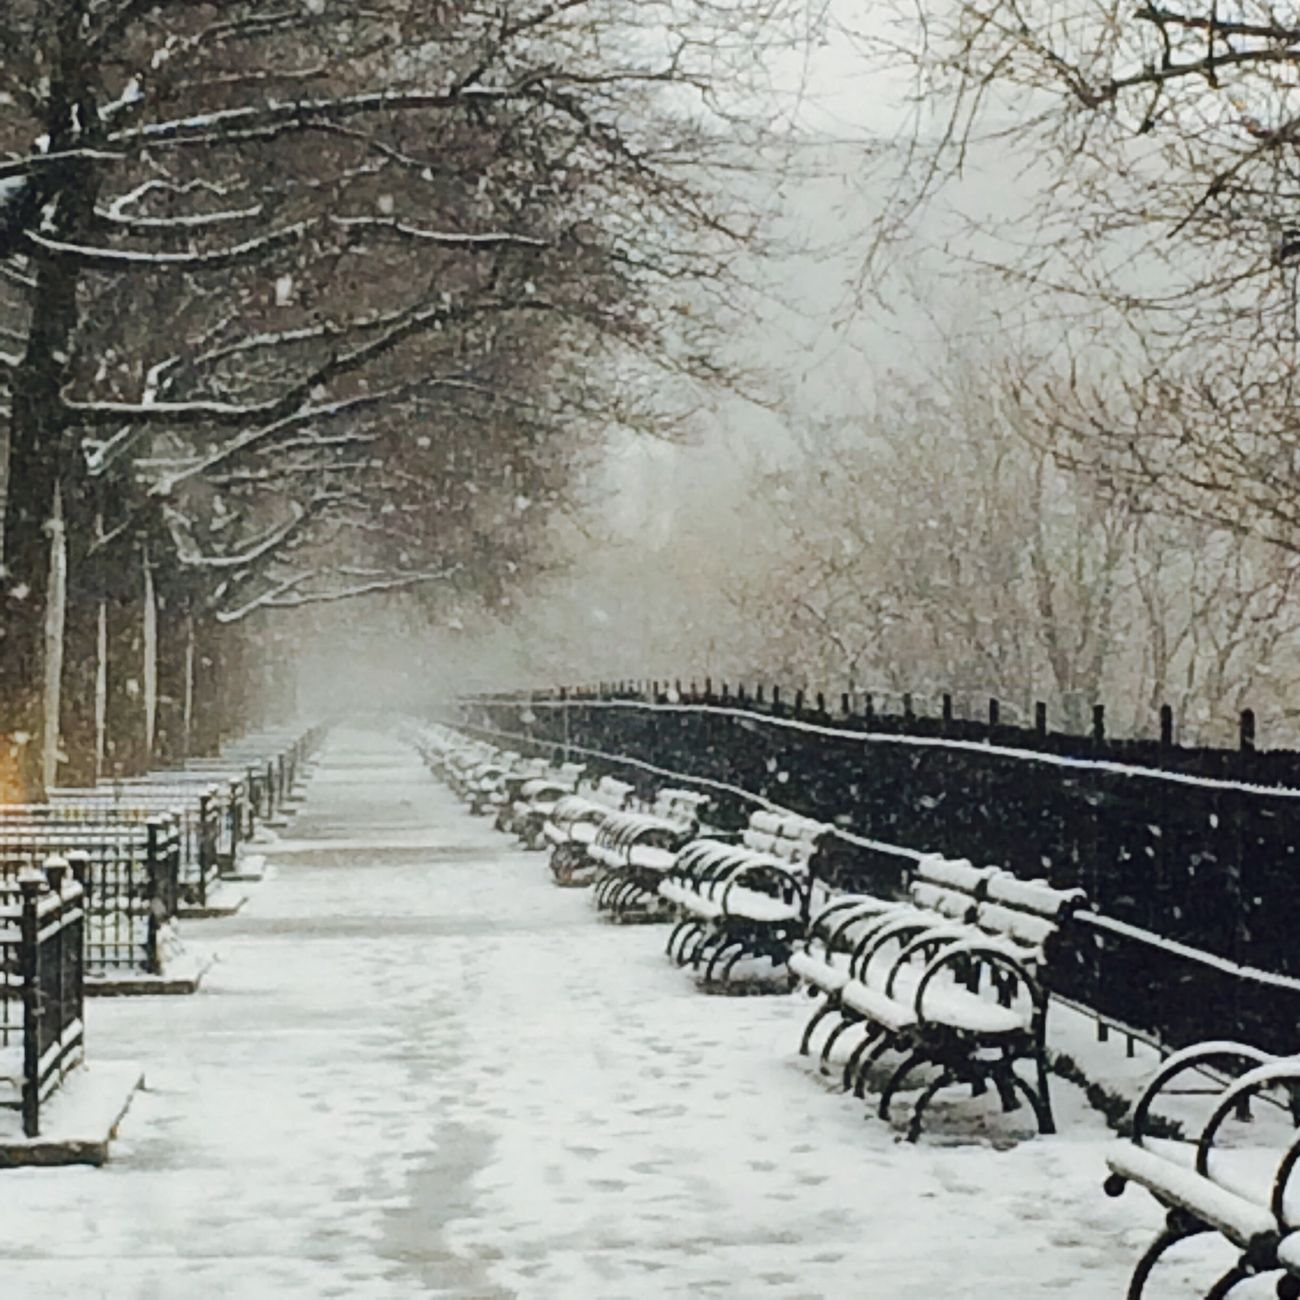 Snow ❄ Benches Park New York City New York Harlem  Winter Blizzard Edgecombe Sugar Hill Hamilton Heights